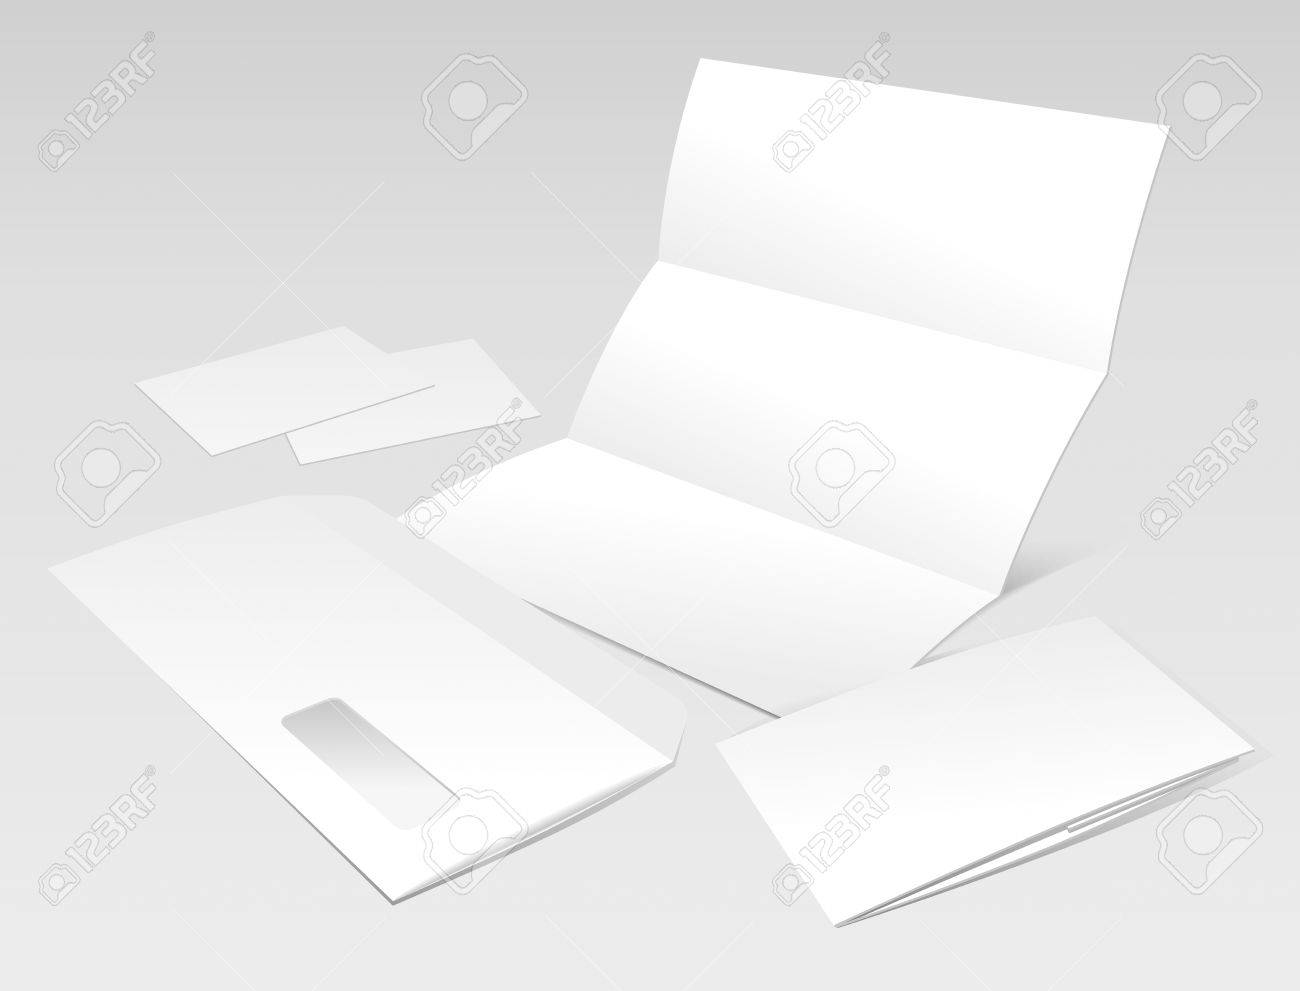 Blank Letter Envelope Business Cards And Booklet Template